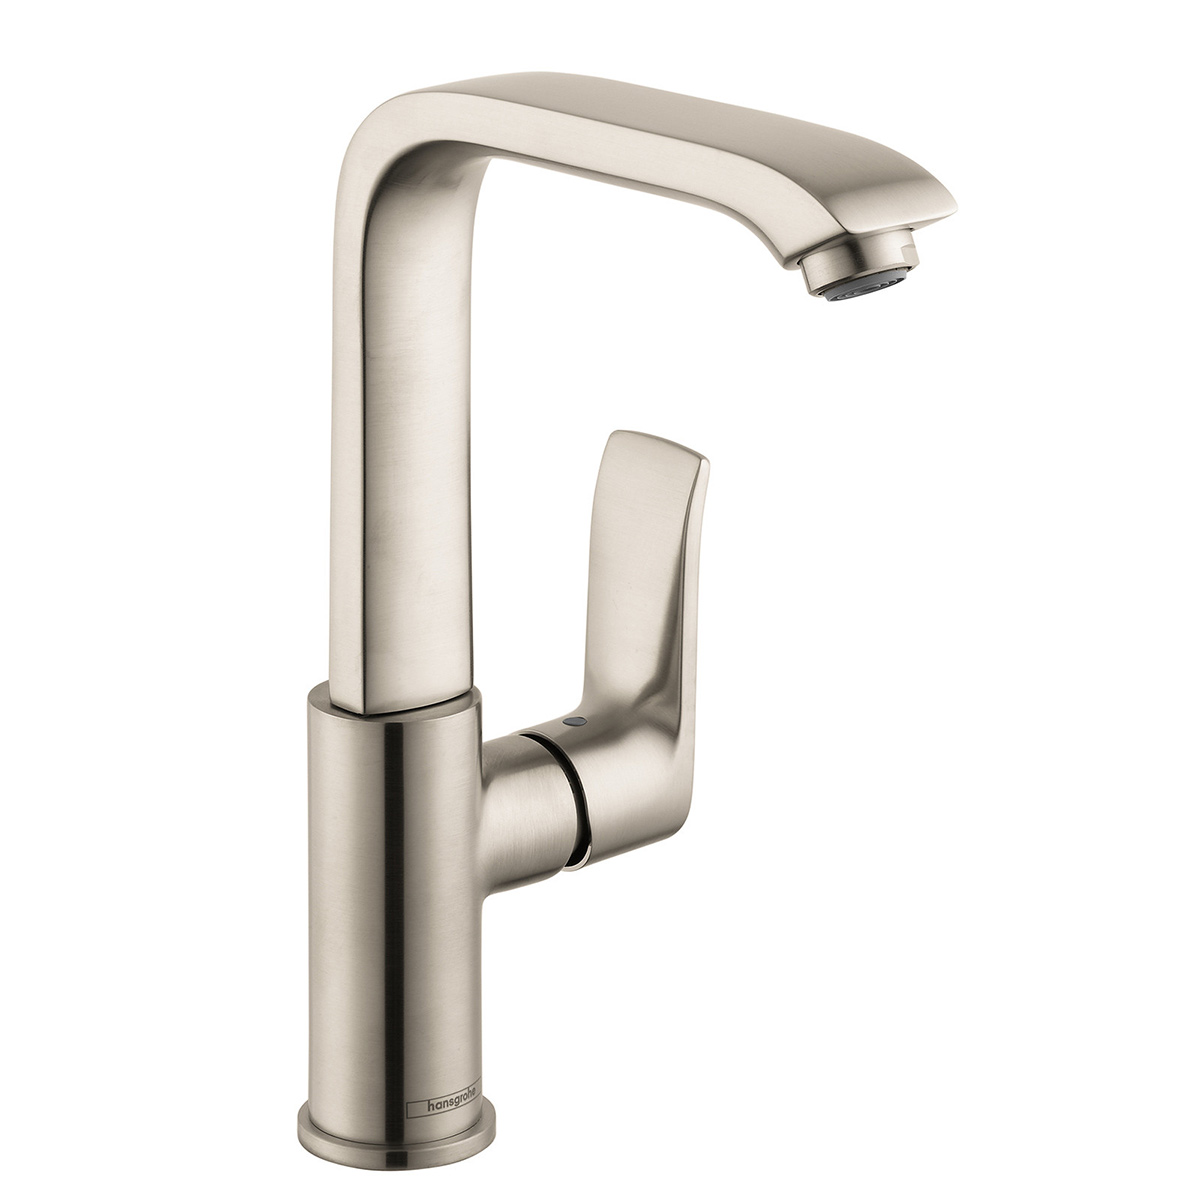 faucets in mounted hansgrohe bathroom faucet tall deck chrome lavatory handle costco single